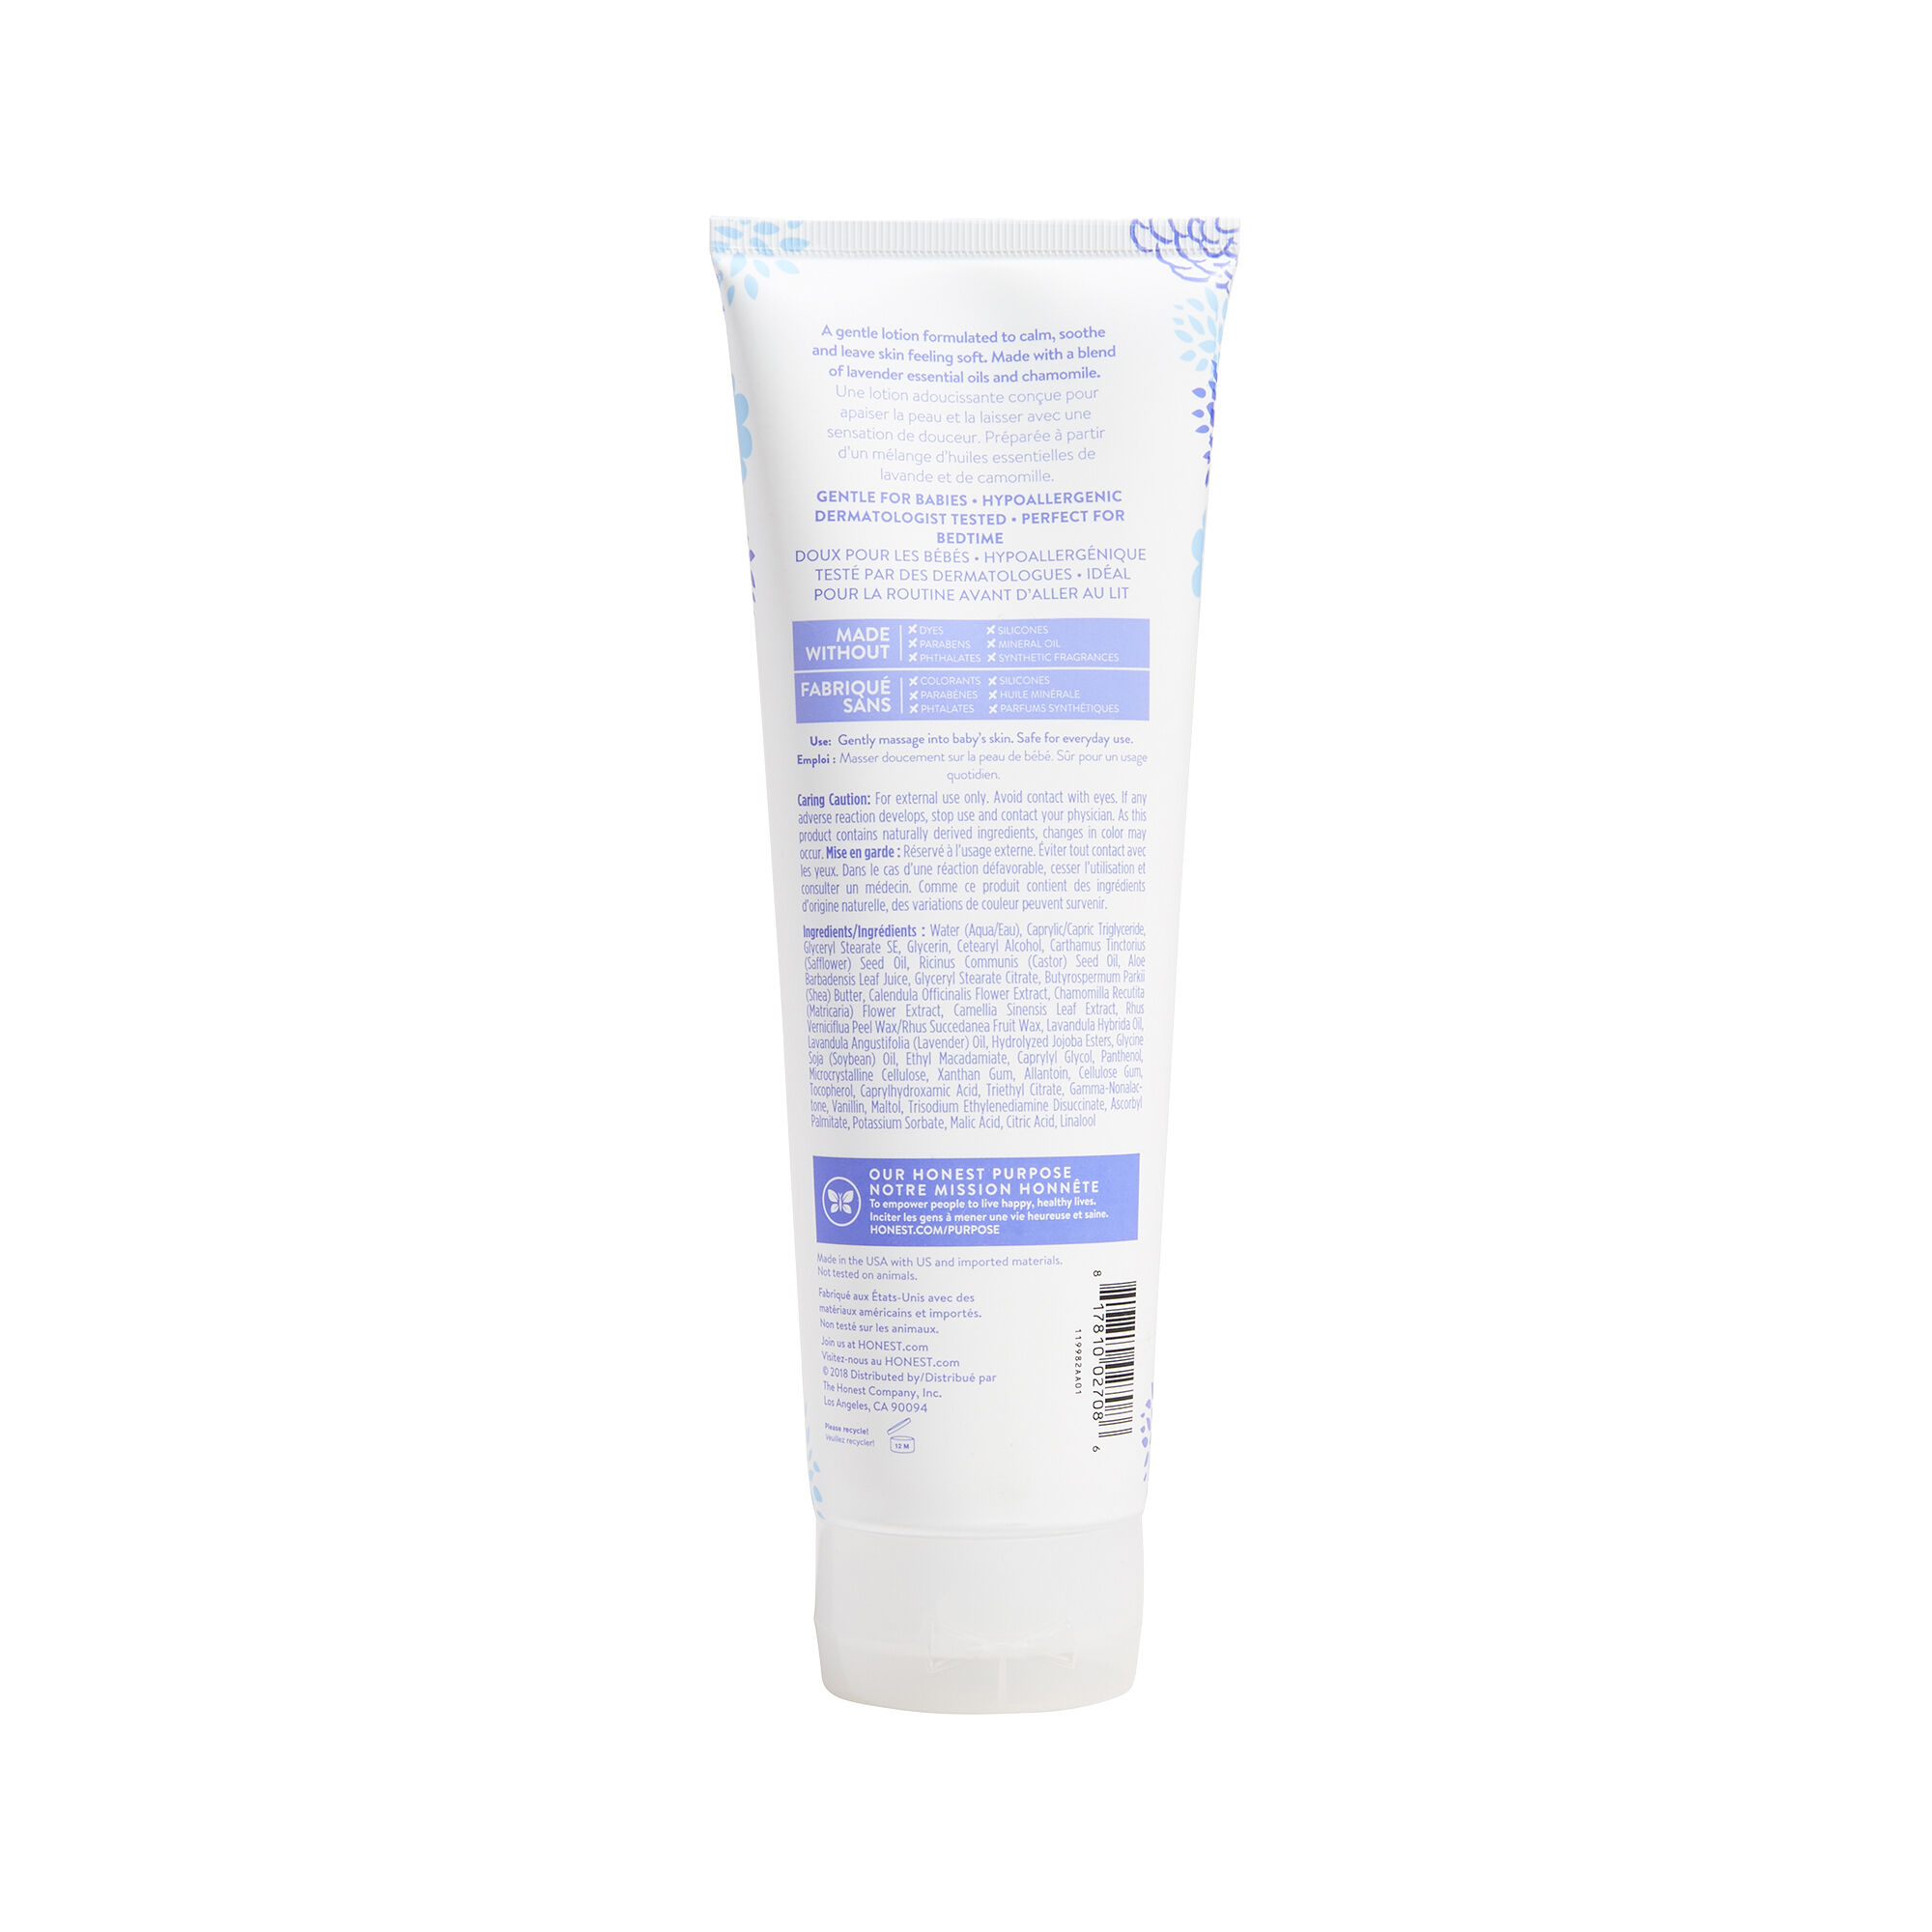 Face + Body Lotion - Truly Calming Lavender